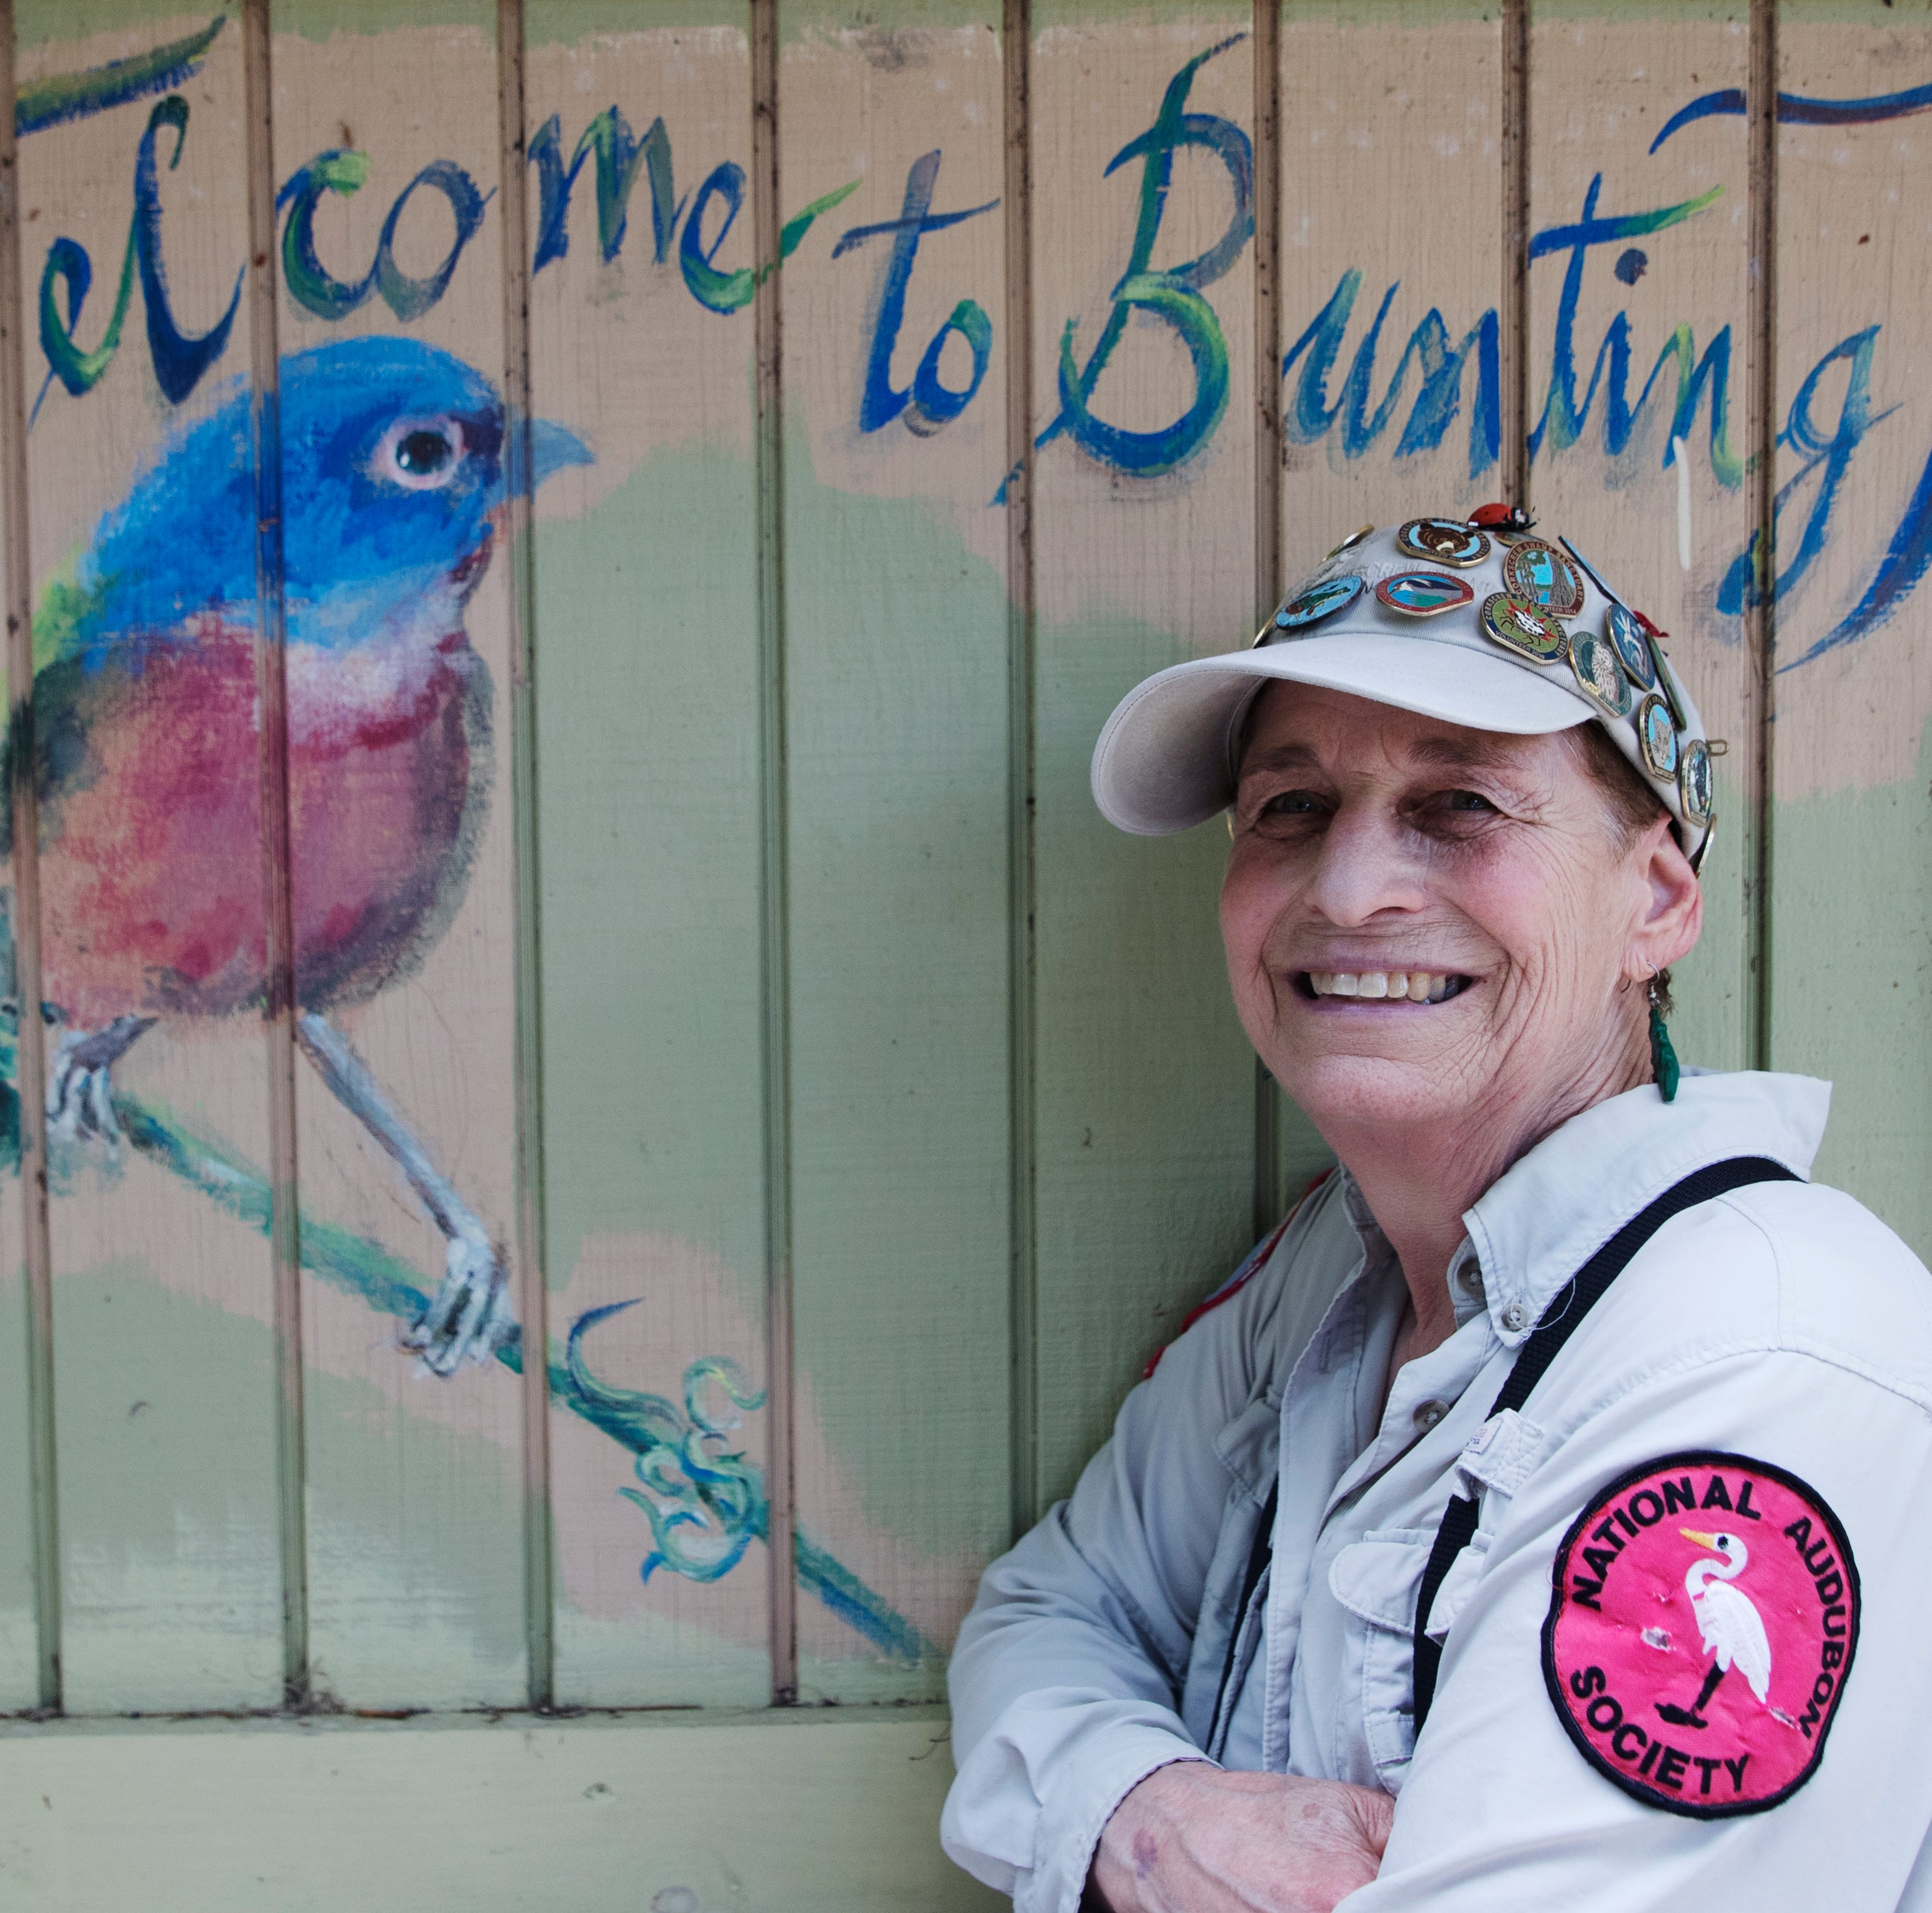 Corkscrew volunteer honored for boardwalk art fundraiser after Hurricane Irma